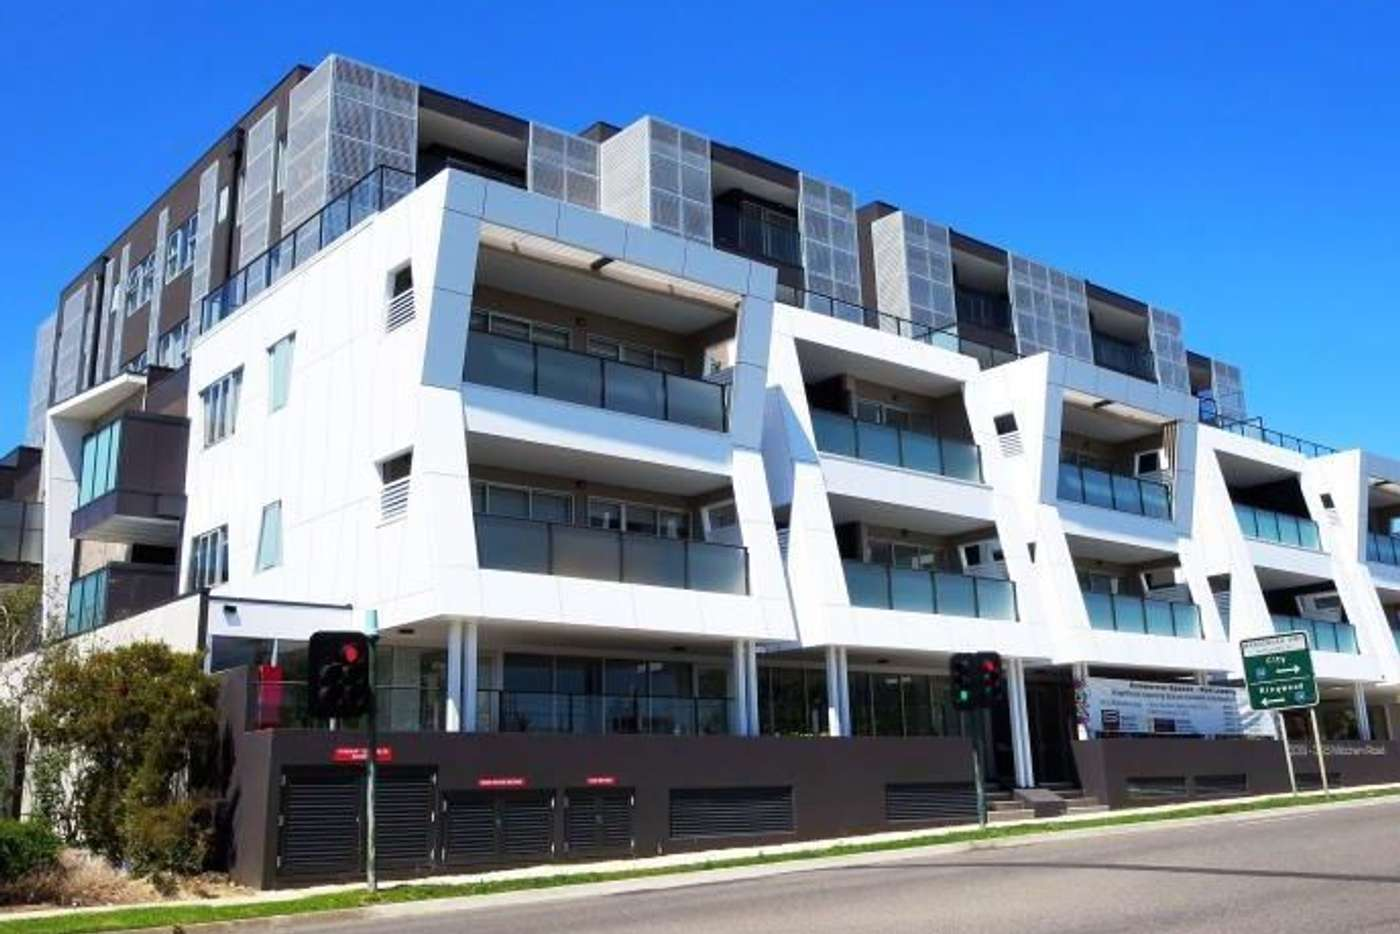 Main view of Homely apartment listing, 103/339-345 Mitcham Road, Mitcham VIC 3132